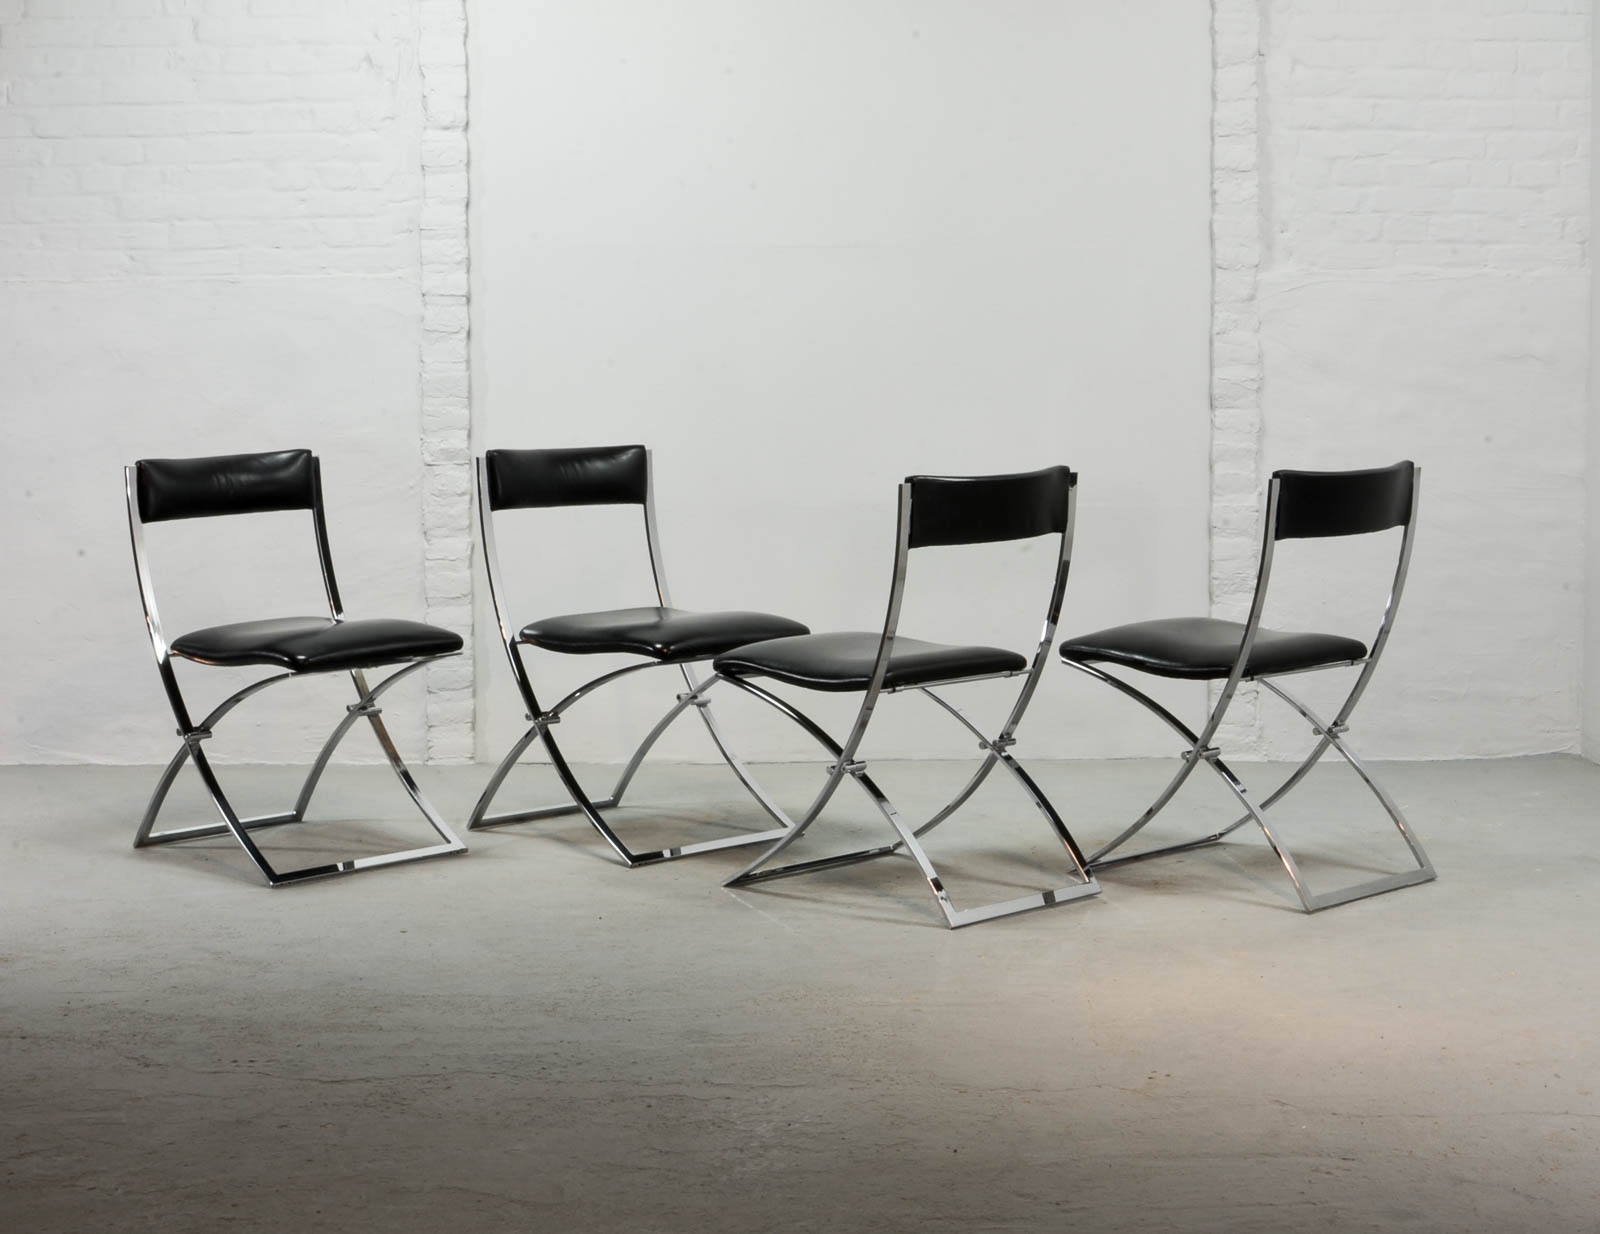 Superb Set of Four Midcentury Foldable Chairs by Marcello Cuneo